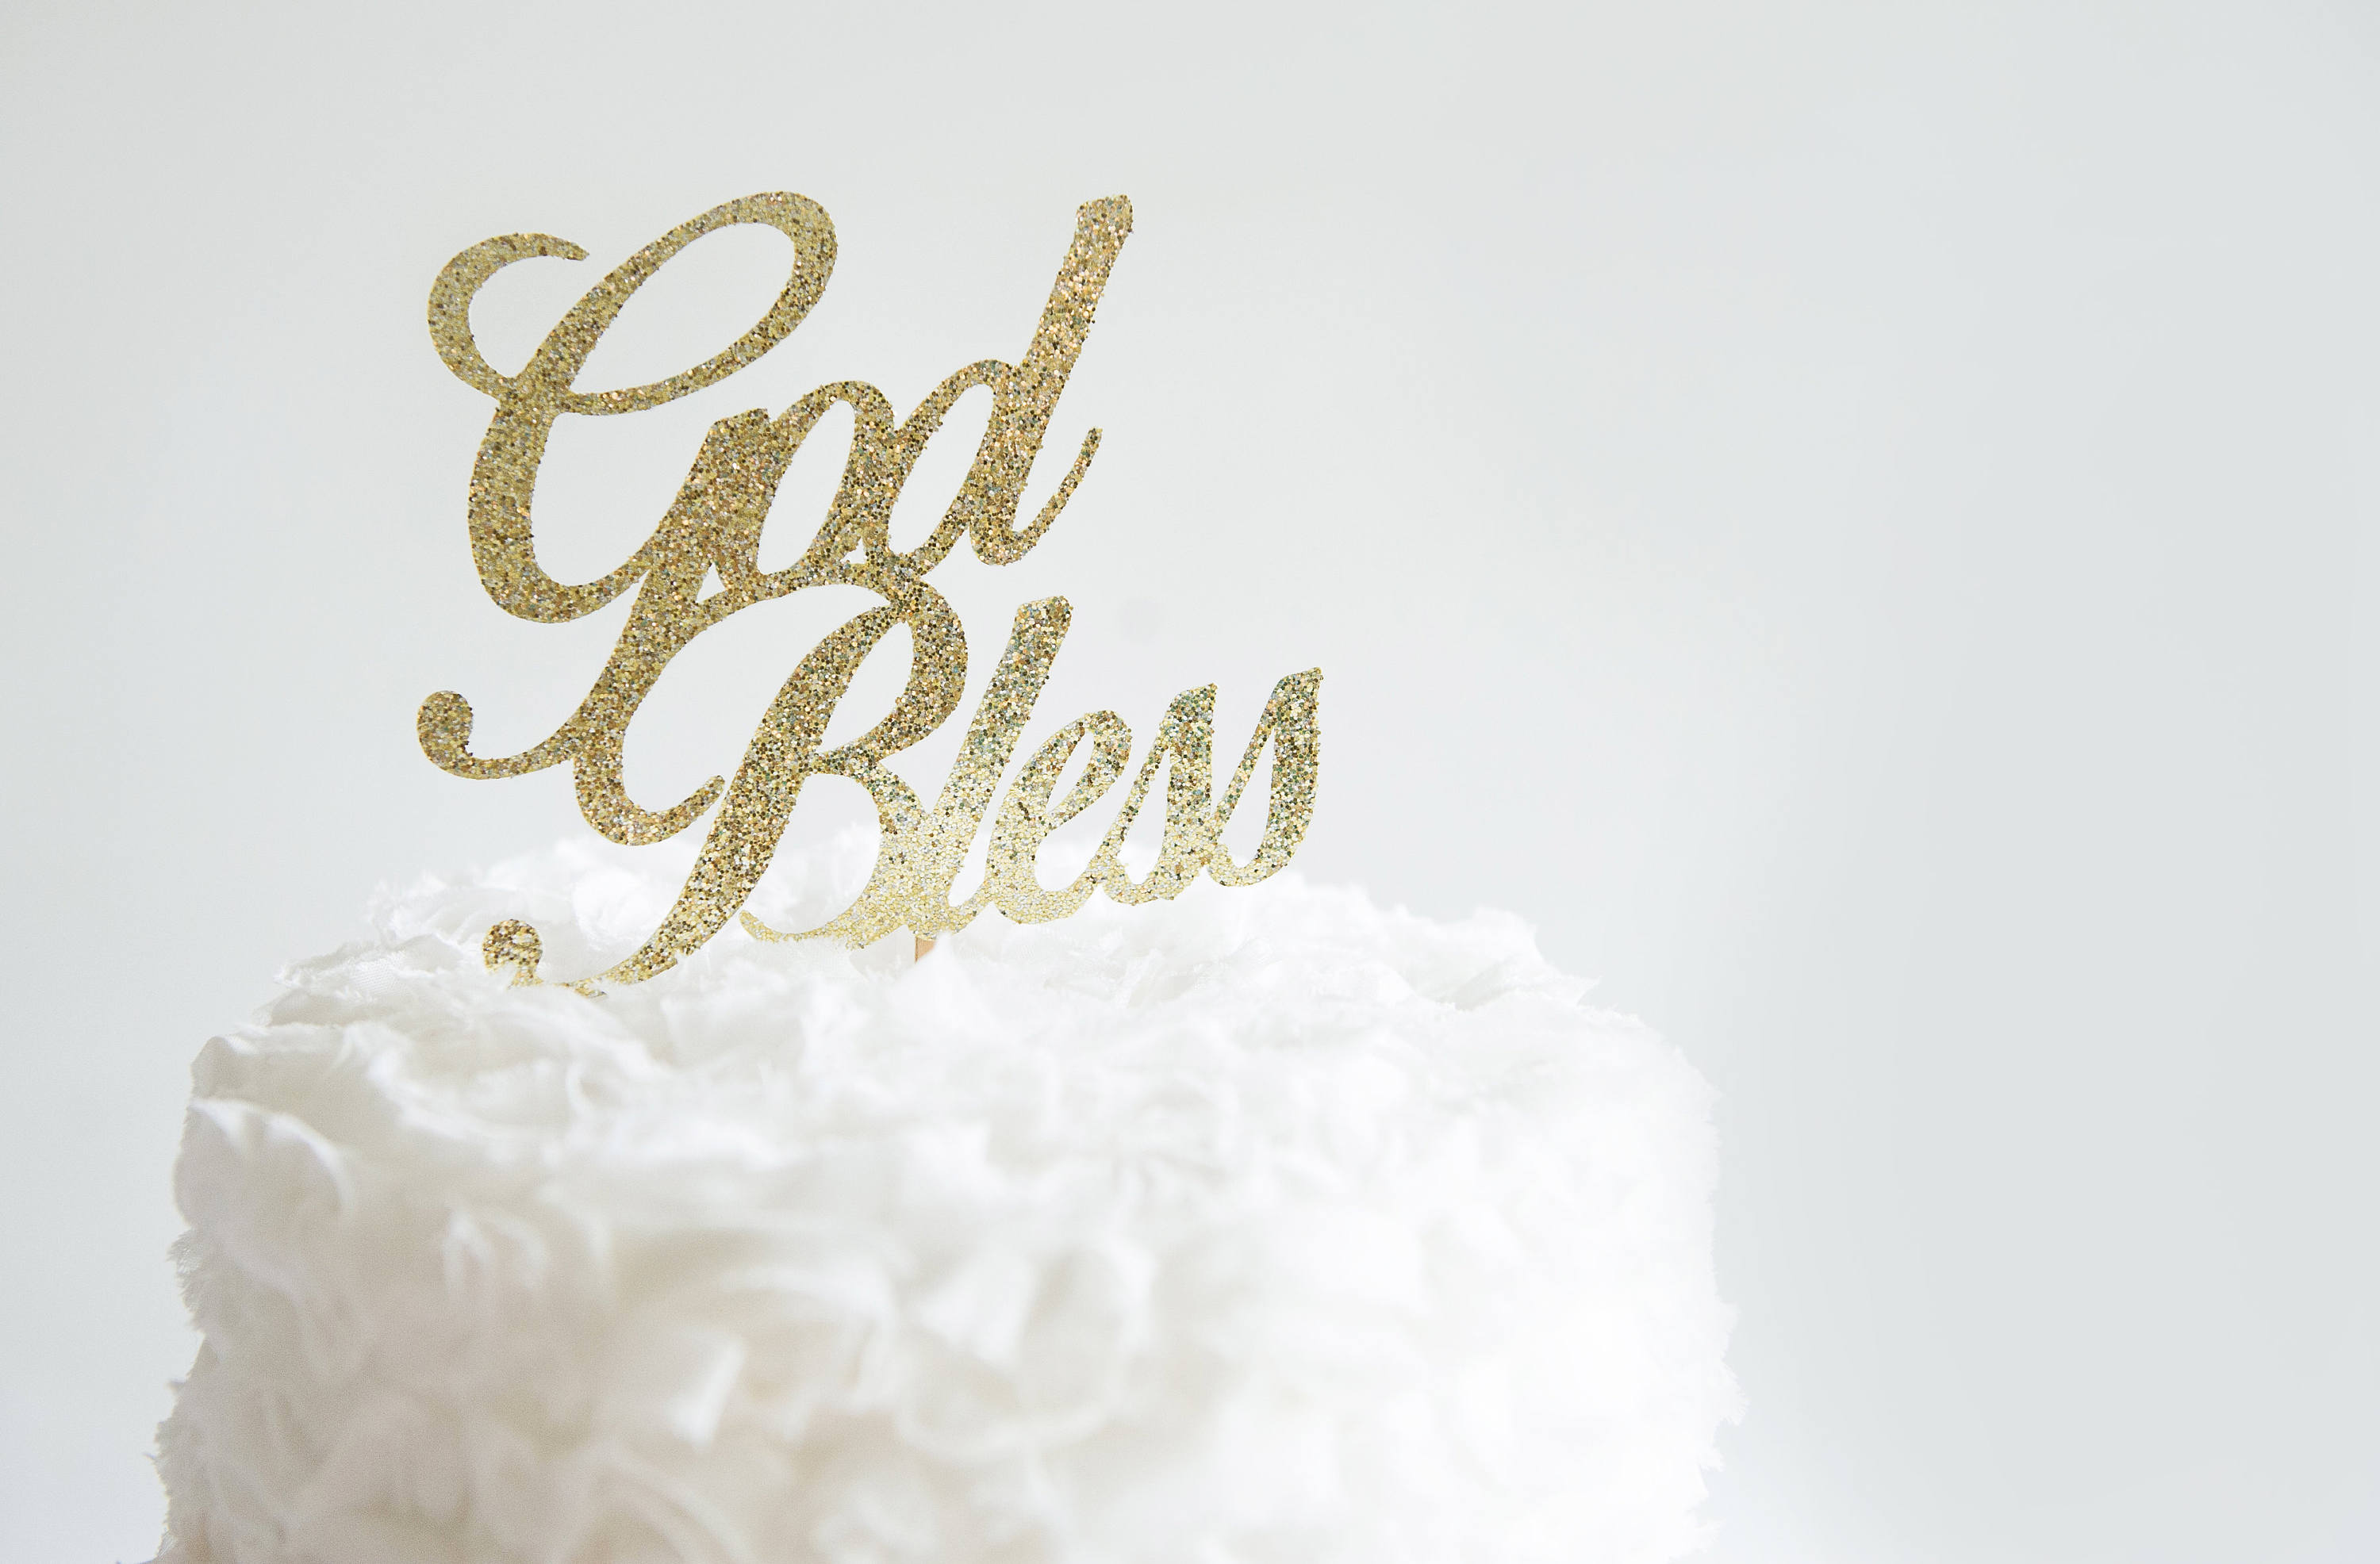 Aliexpresscom Buy God Bless Cake Topper Baptism First Holy